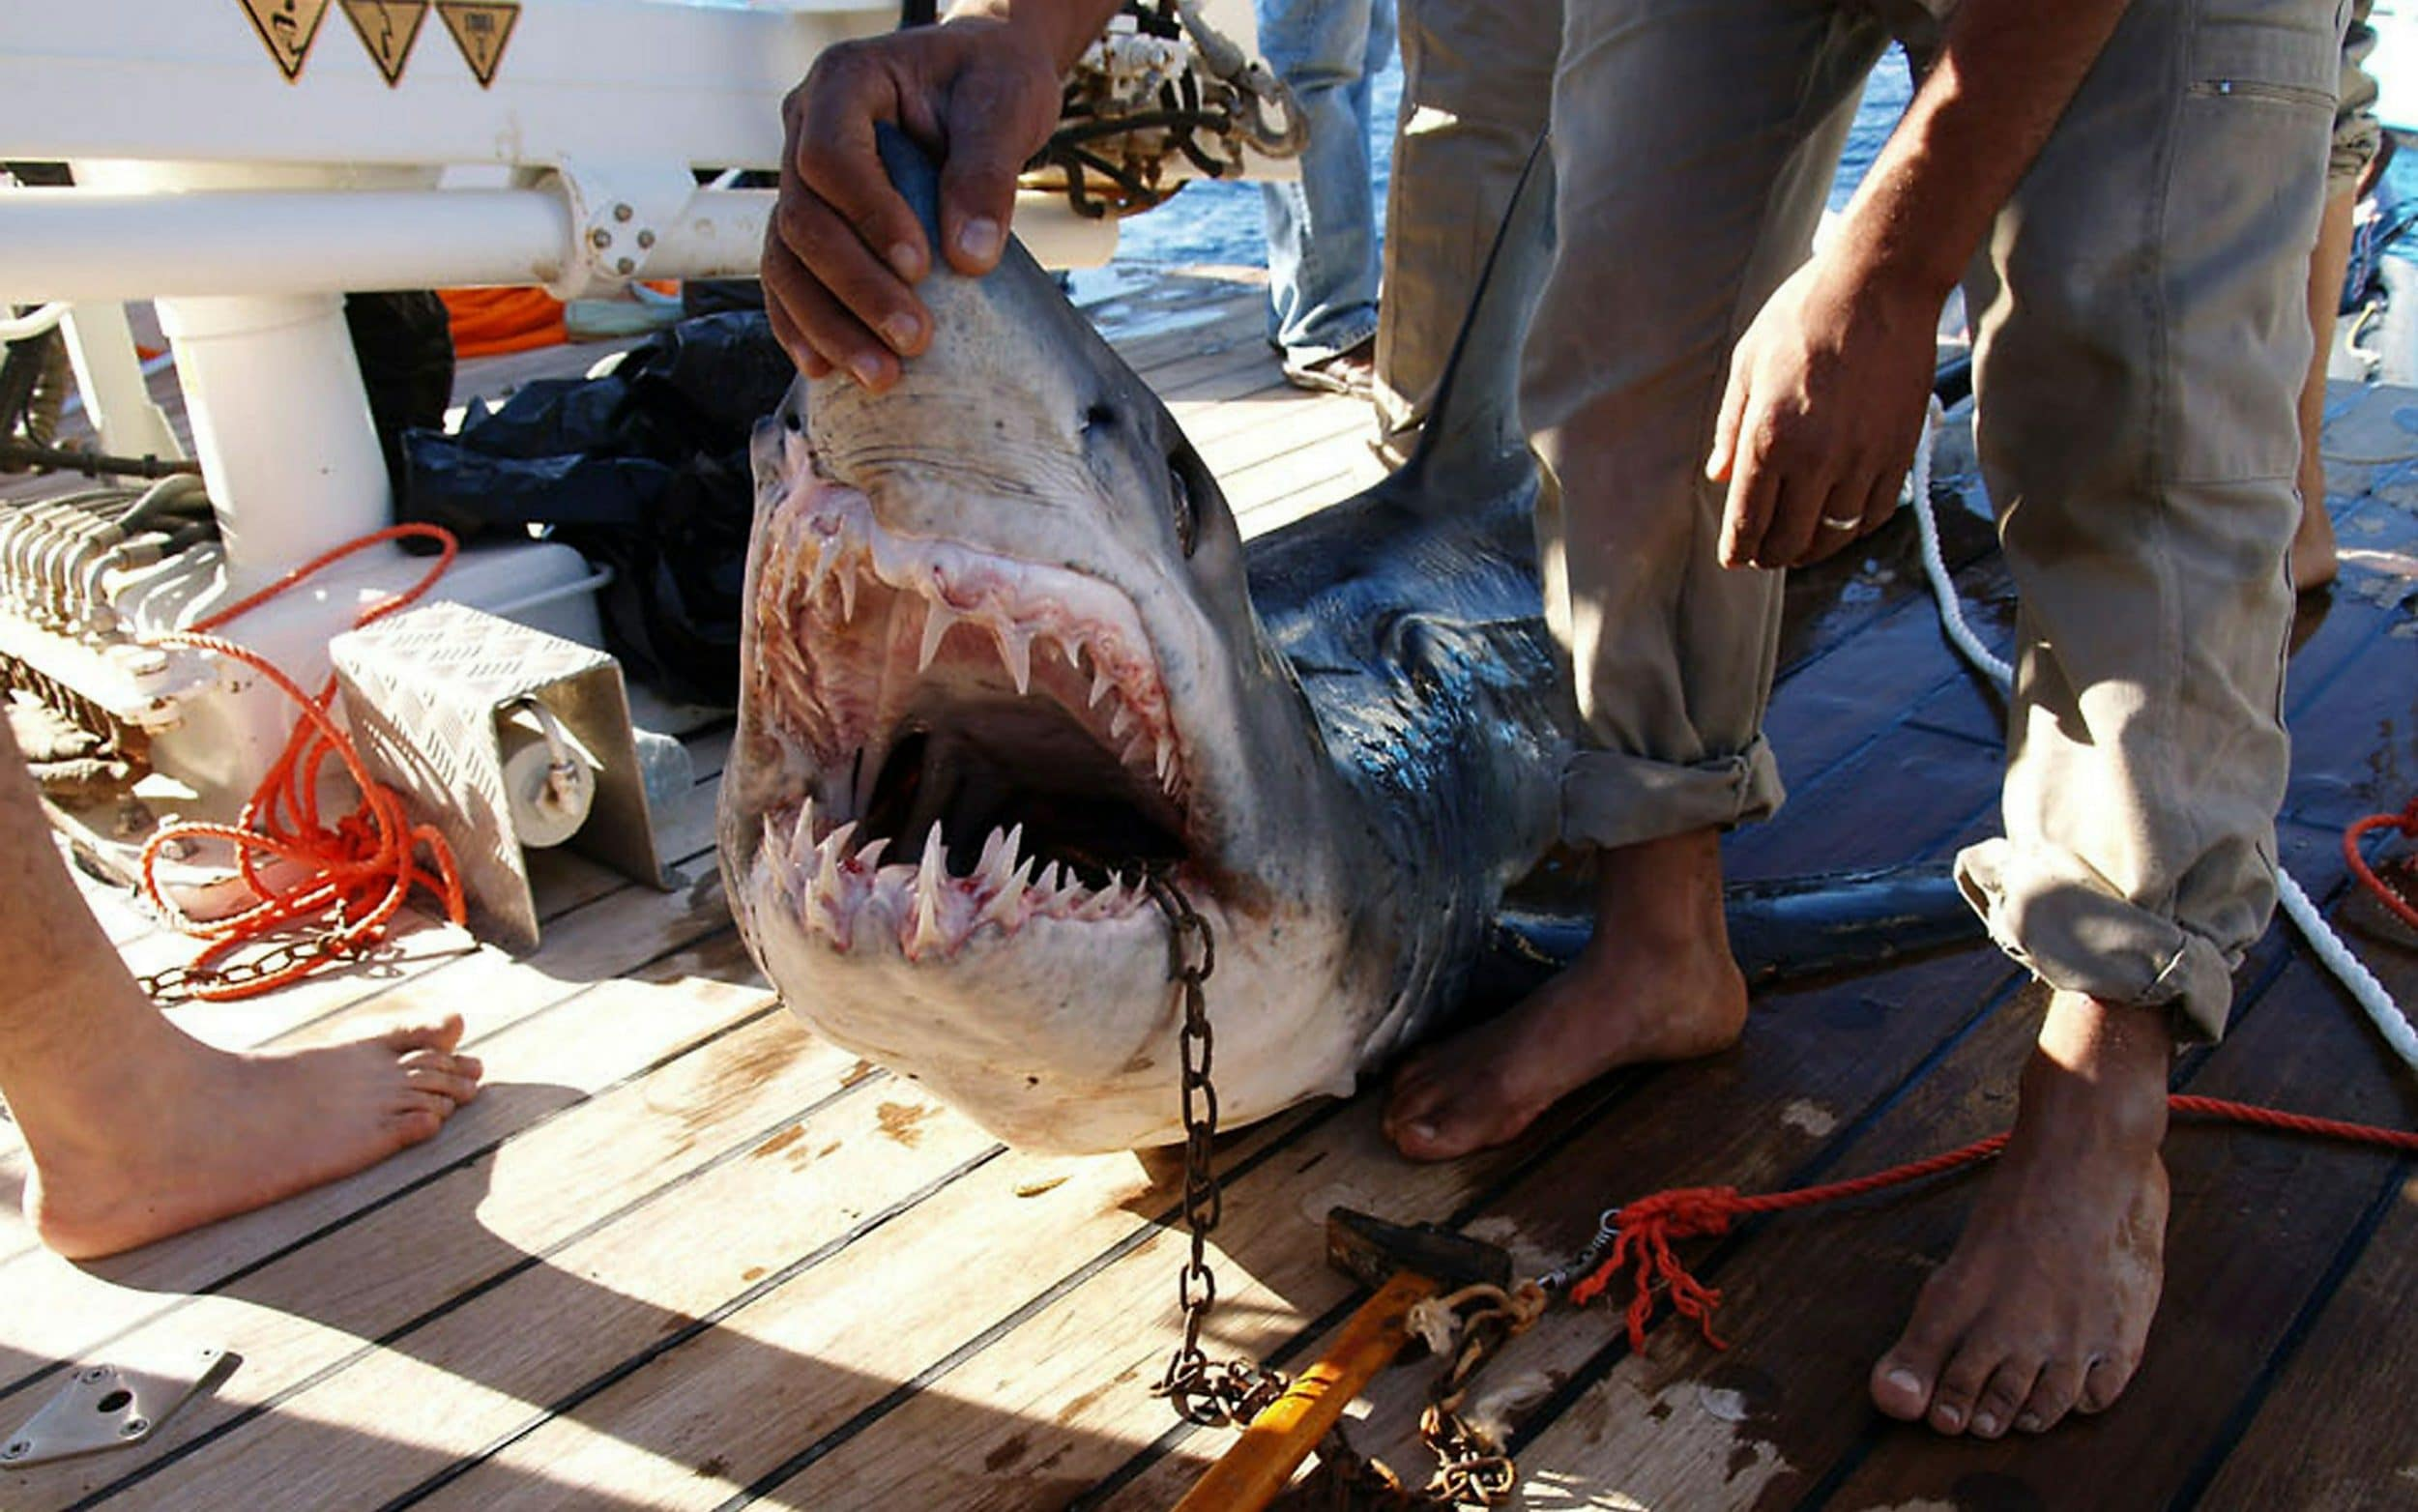 Tourist, 12, and guide lose limbs in shark attack atSharmEl-Sheikh